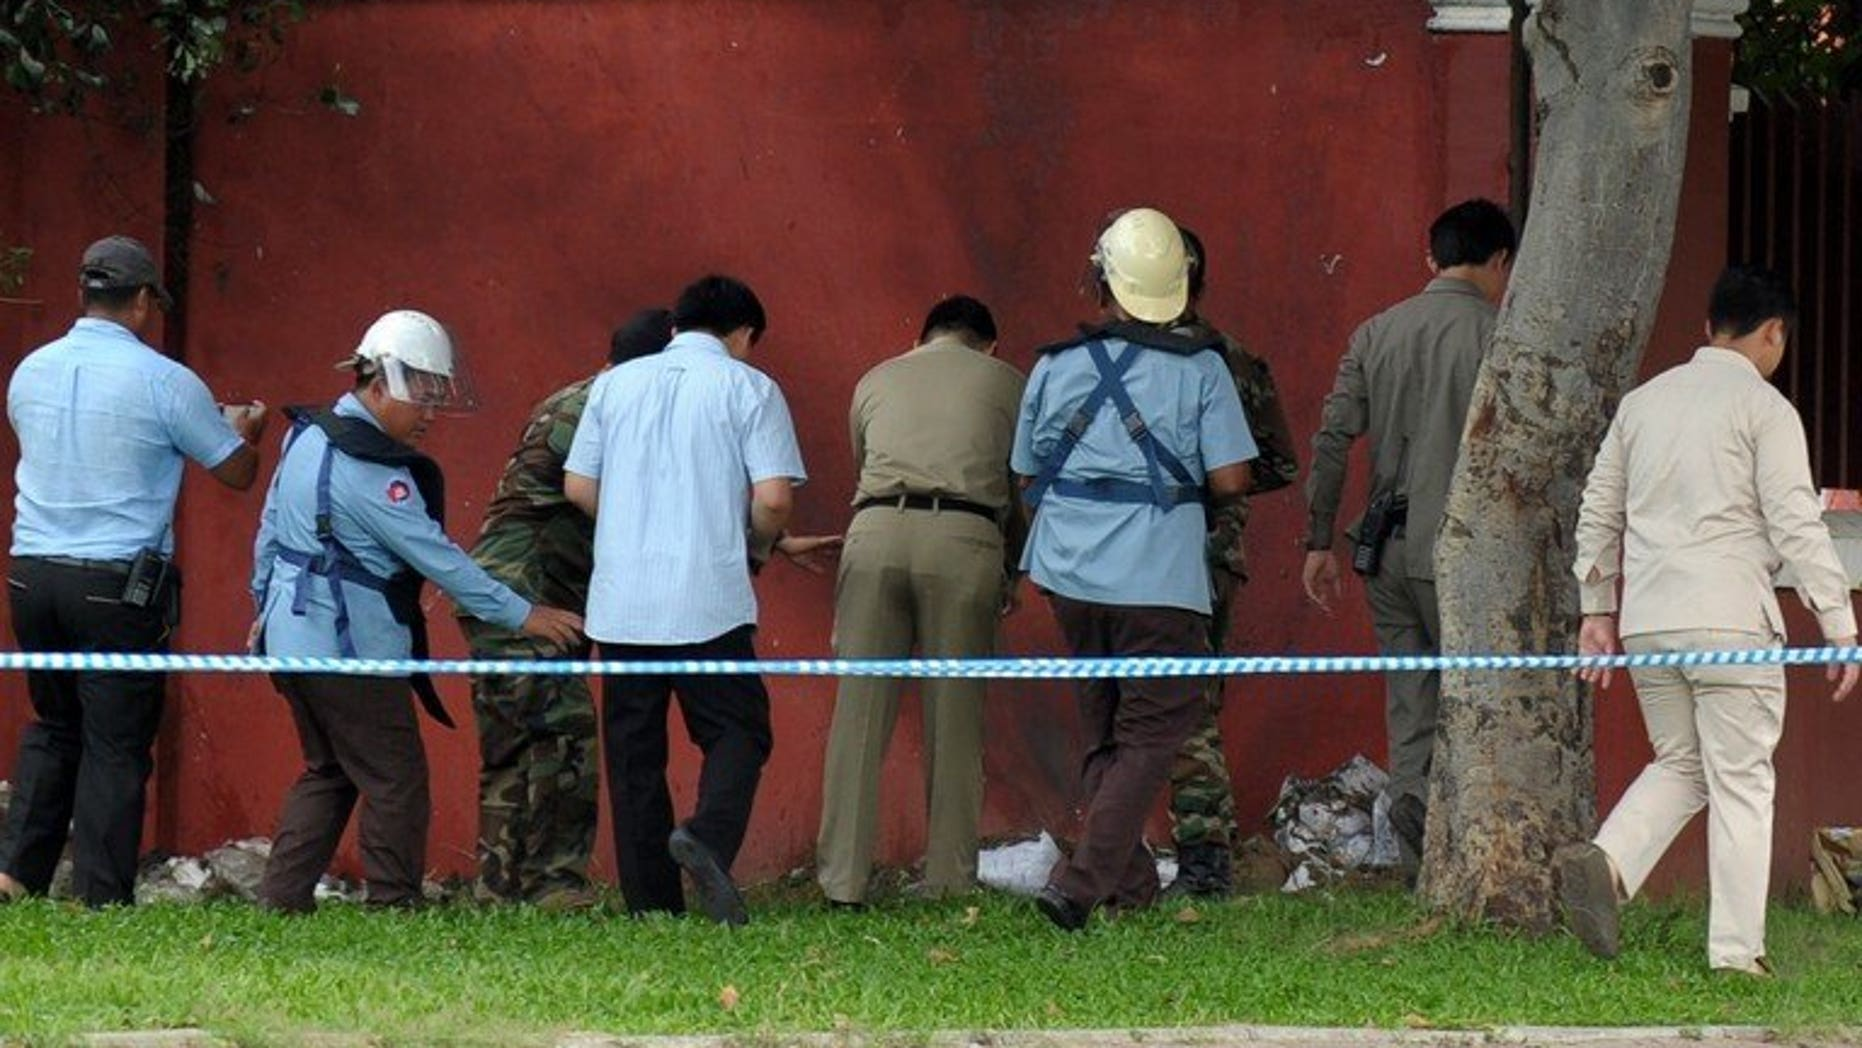 Bomb officials and police inspect a home-made bomb near Cambodia's parliament in Phnom Penh on September 13, 2013. The makeshift bomb was safely detonated by explosive experts, causing a loud bang that shook some nearby buildings, police said.